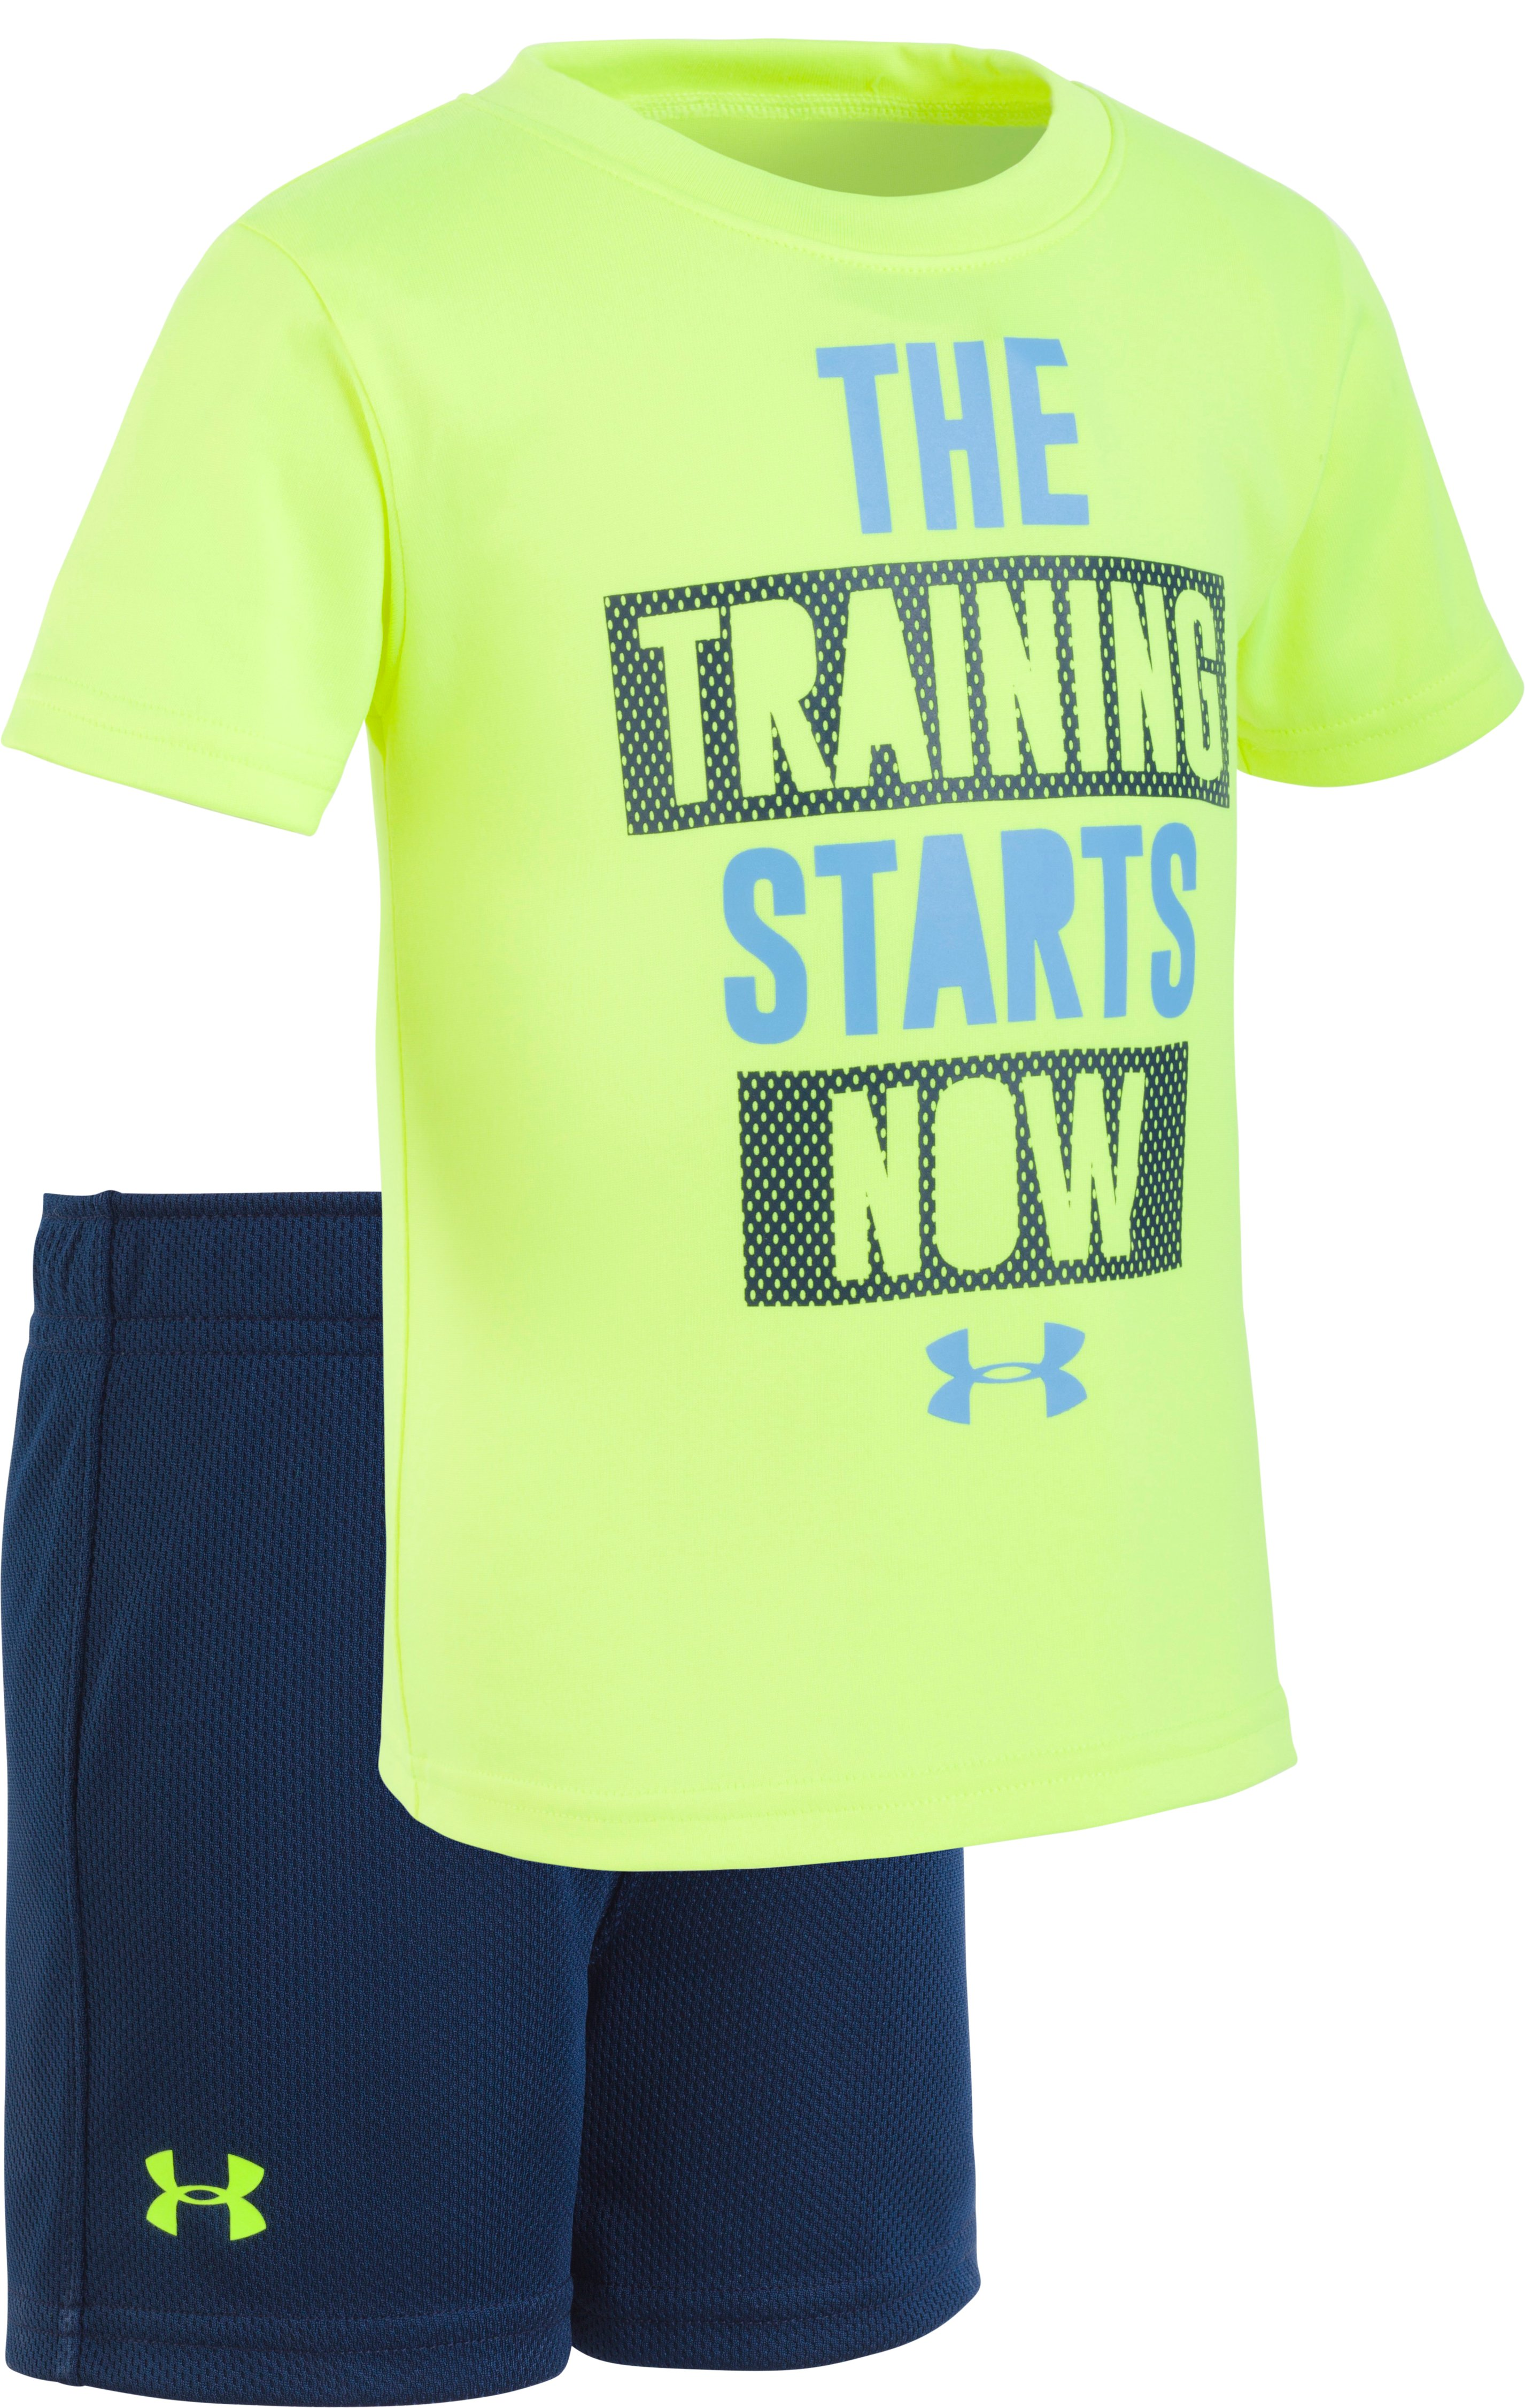 Boys' Infant UA The Training Starts Now Set , High-Vis Yellow, zoomed